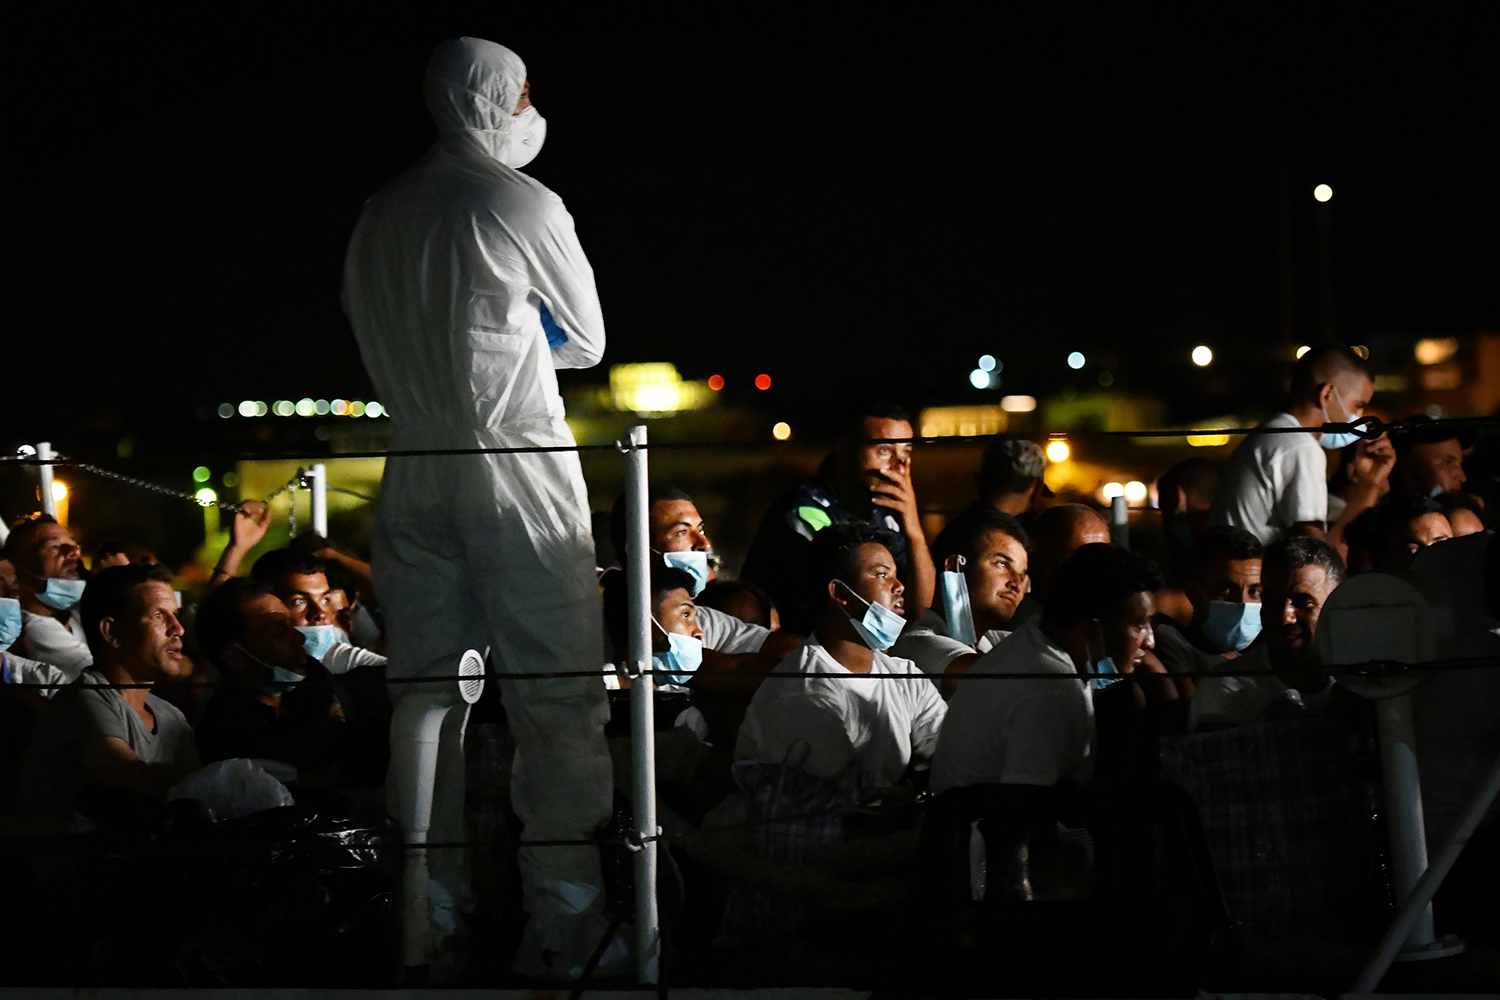 Migrants wait onboard a coast guard ship in the harbor the Pelagie Island of Lampedusa in Italy on July 30. ALBERTO PIZZOLI/AFP via Getty Images